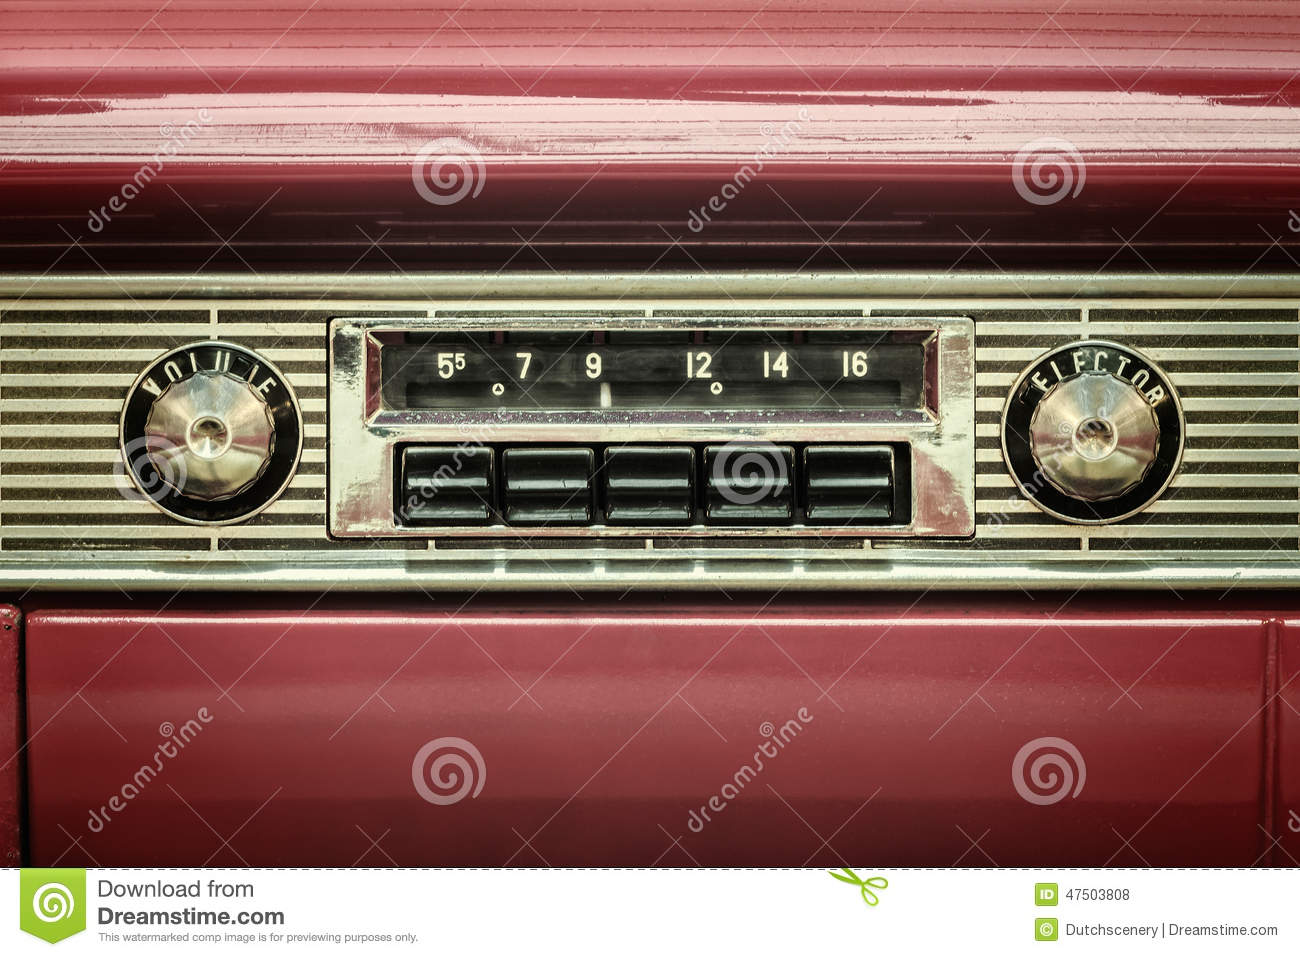 Old vintage automobile radios